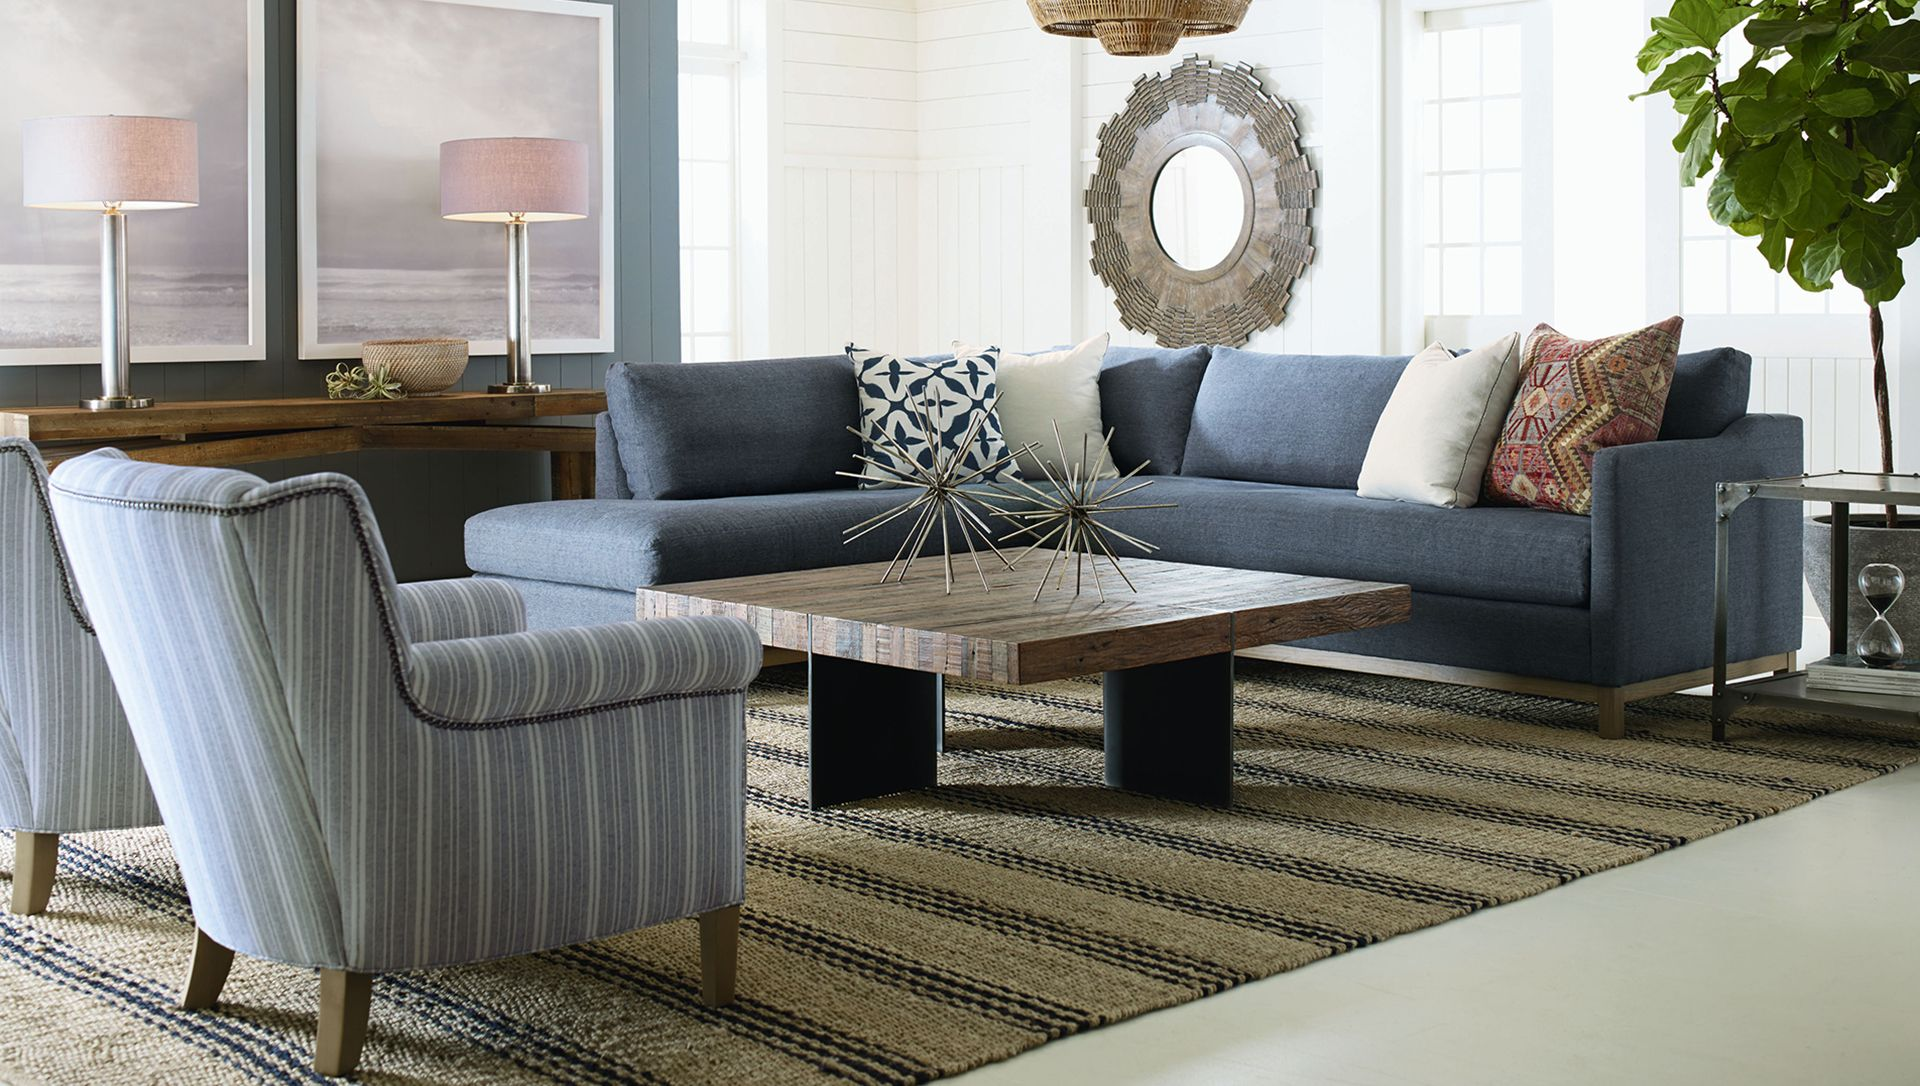 Cr Laine Home Page This Company Has Great Furniture And Fabrics